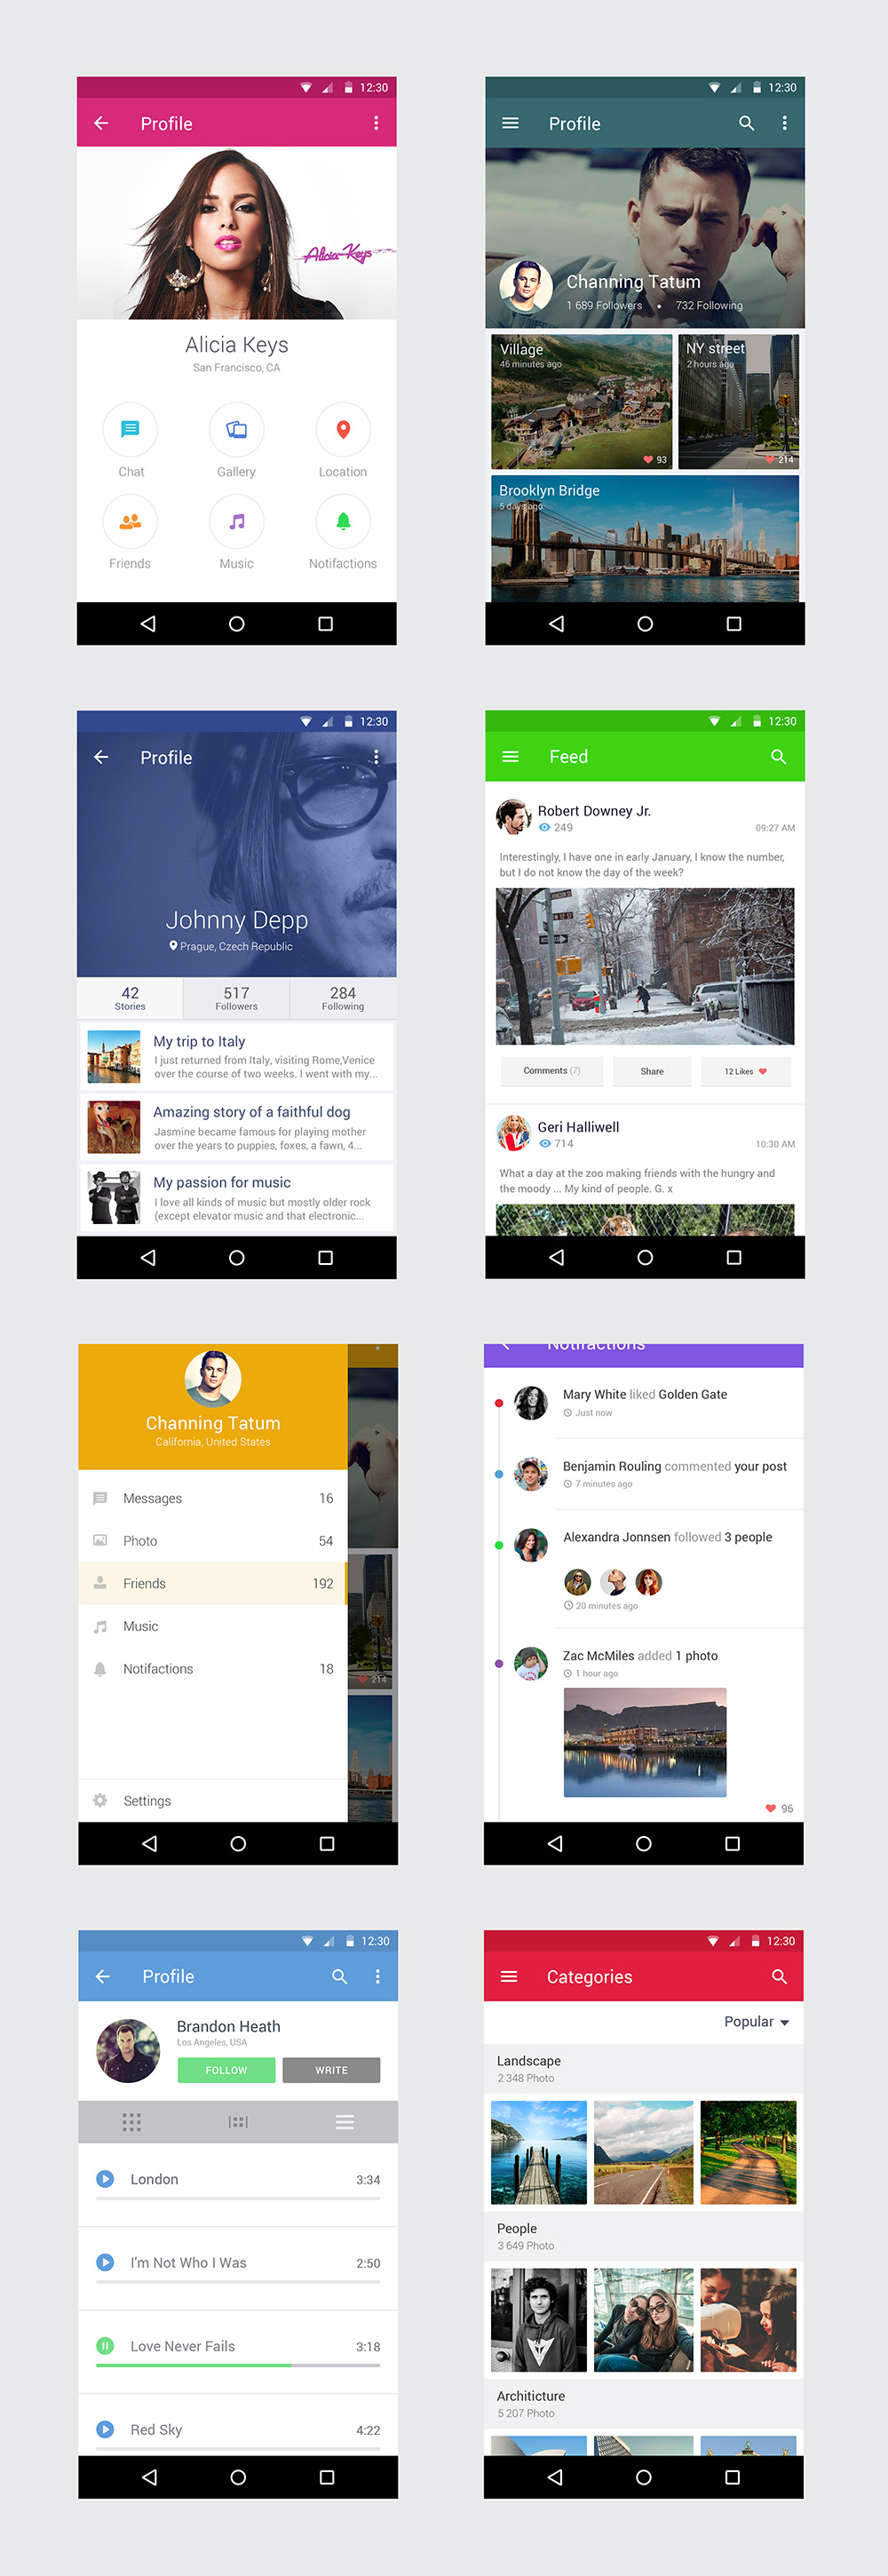 http://www.graphicsfuel.com/wp-content/uploads/2015/02/android-ui-kit.jpg